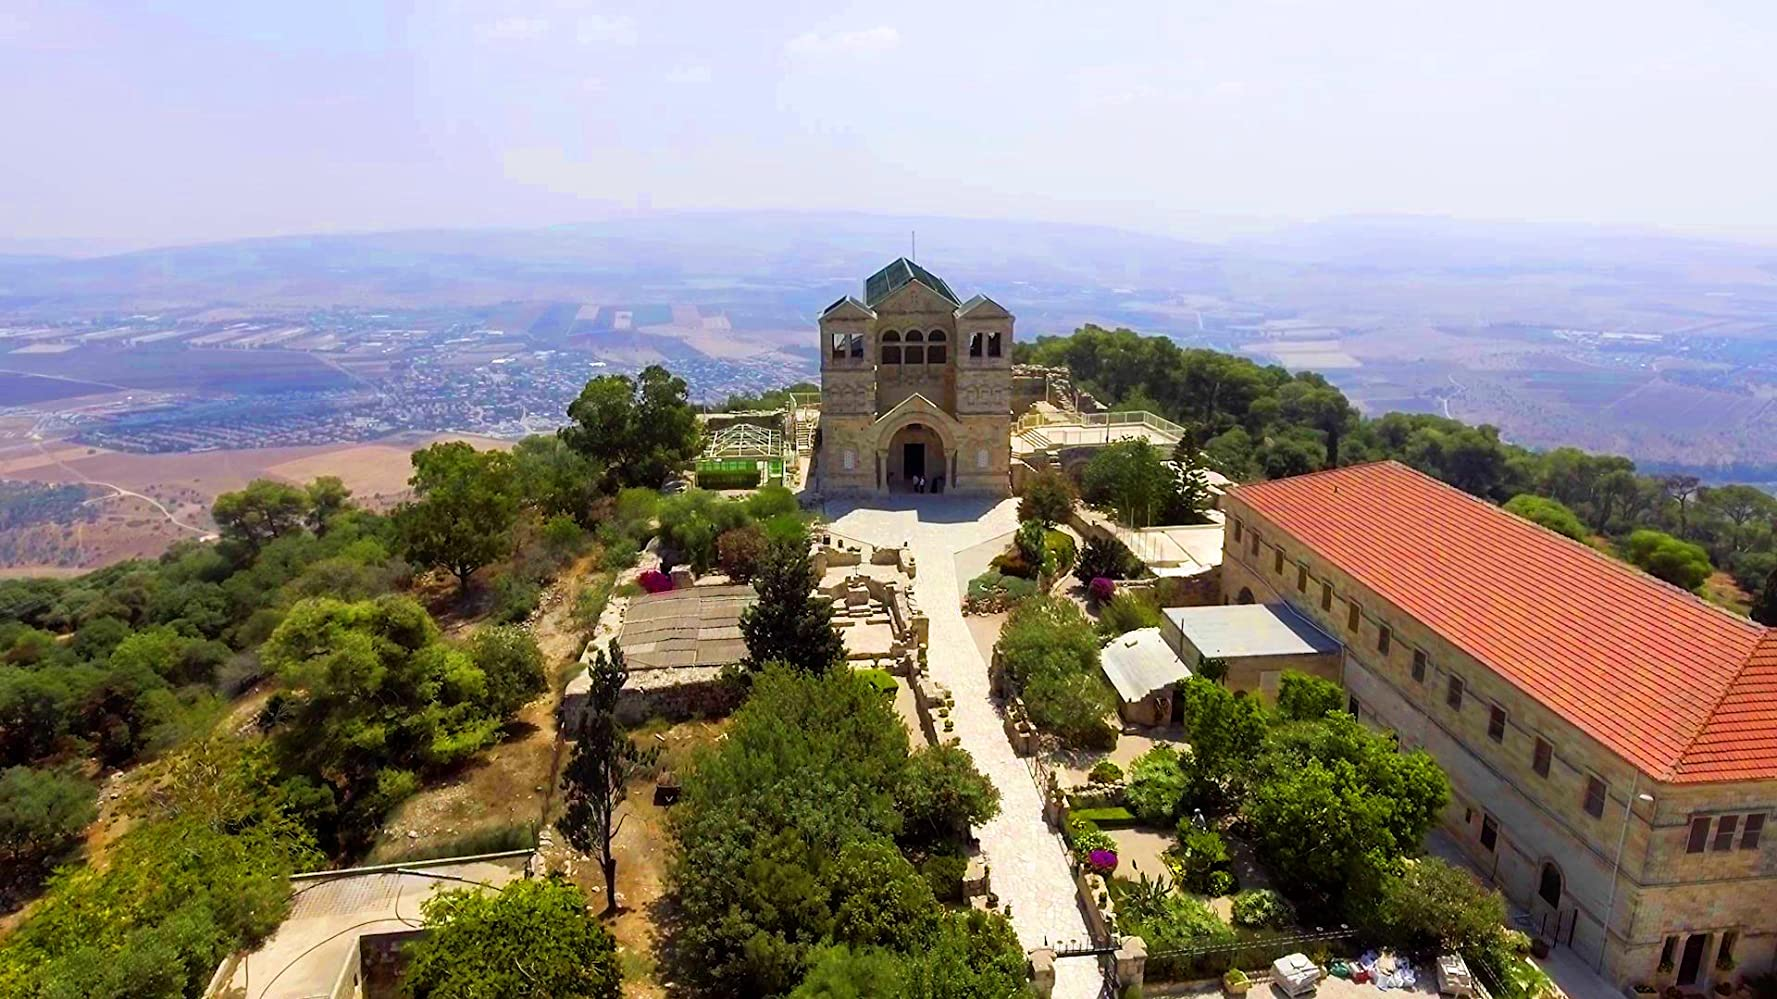 Holy Mount Tabor - Place of the Transfiguration 55